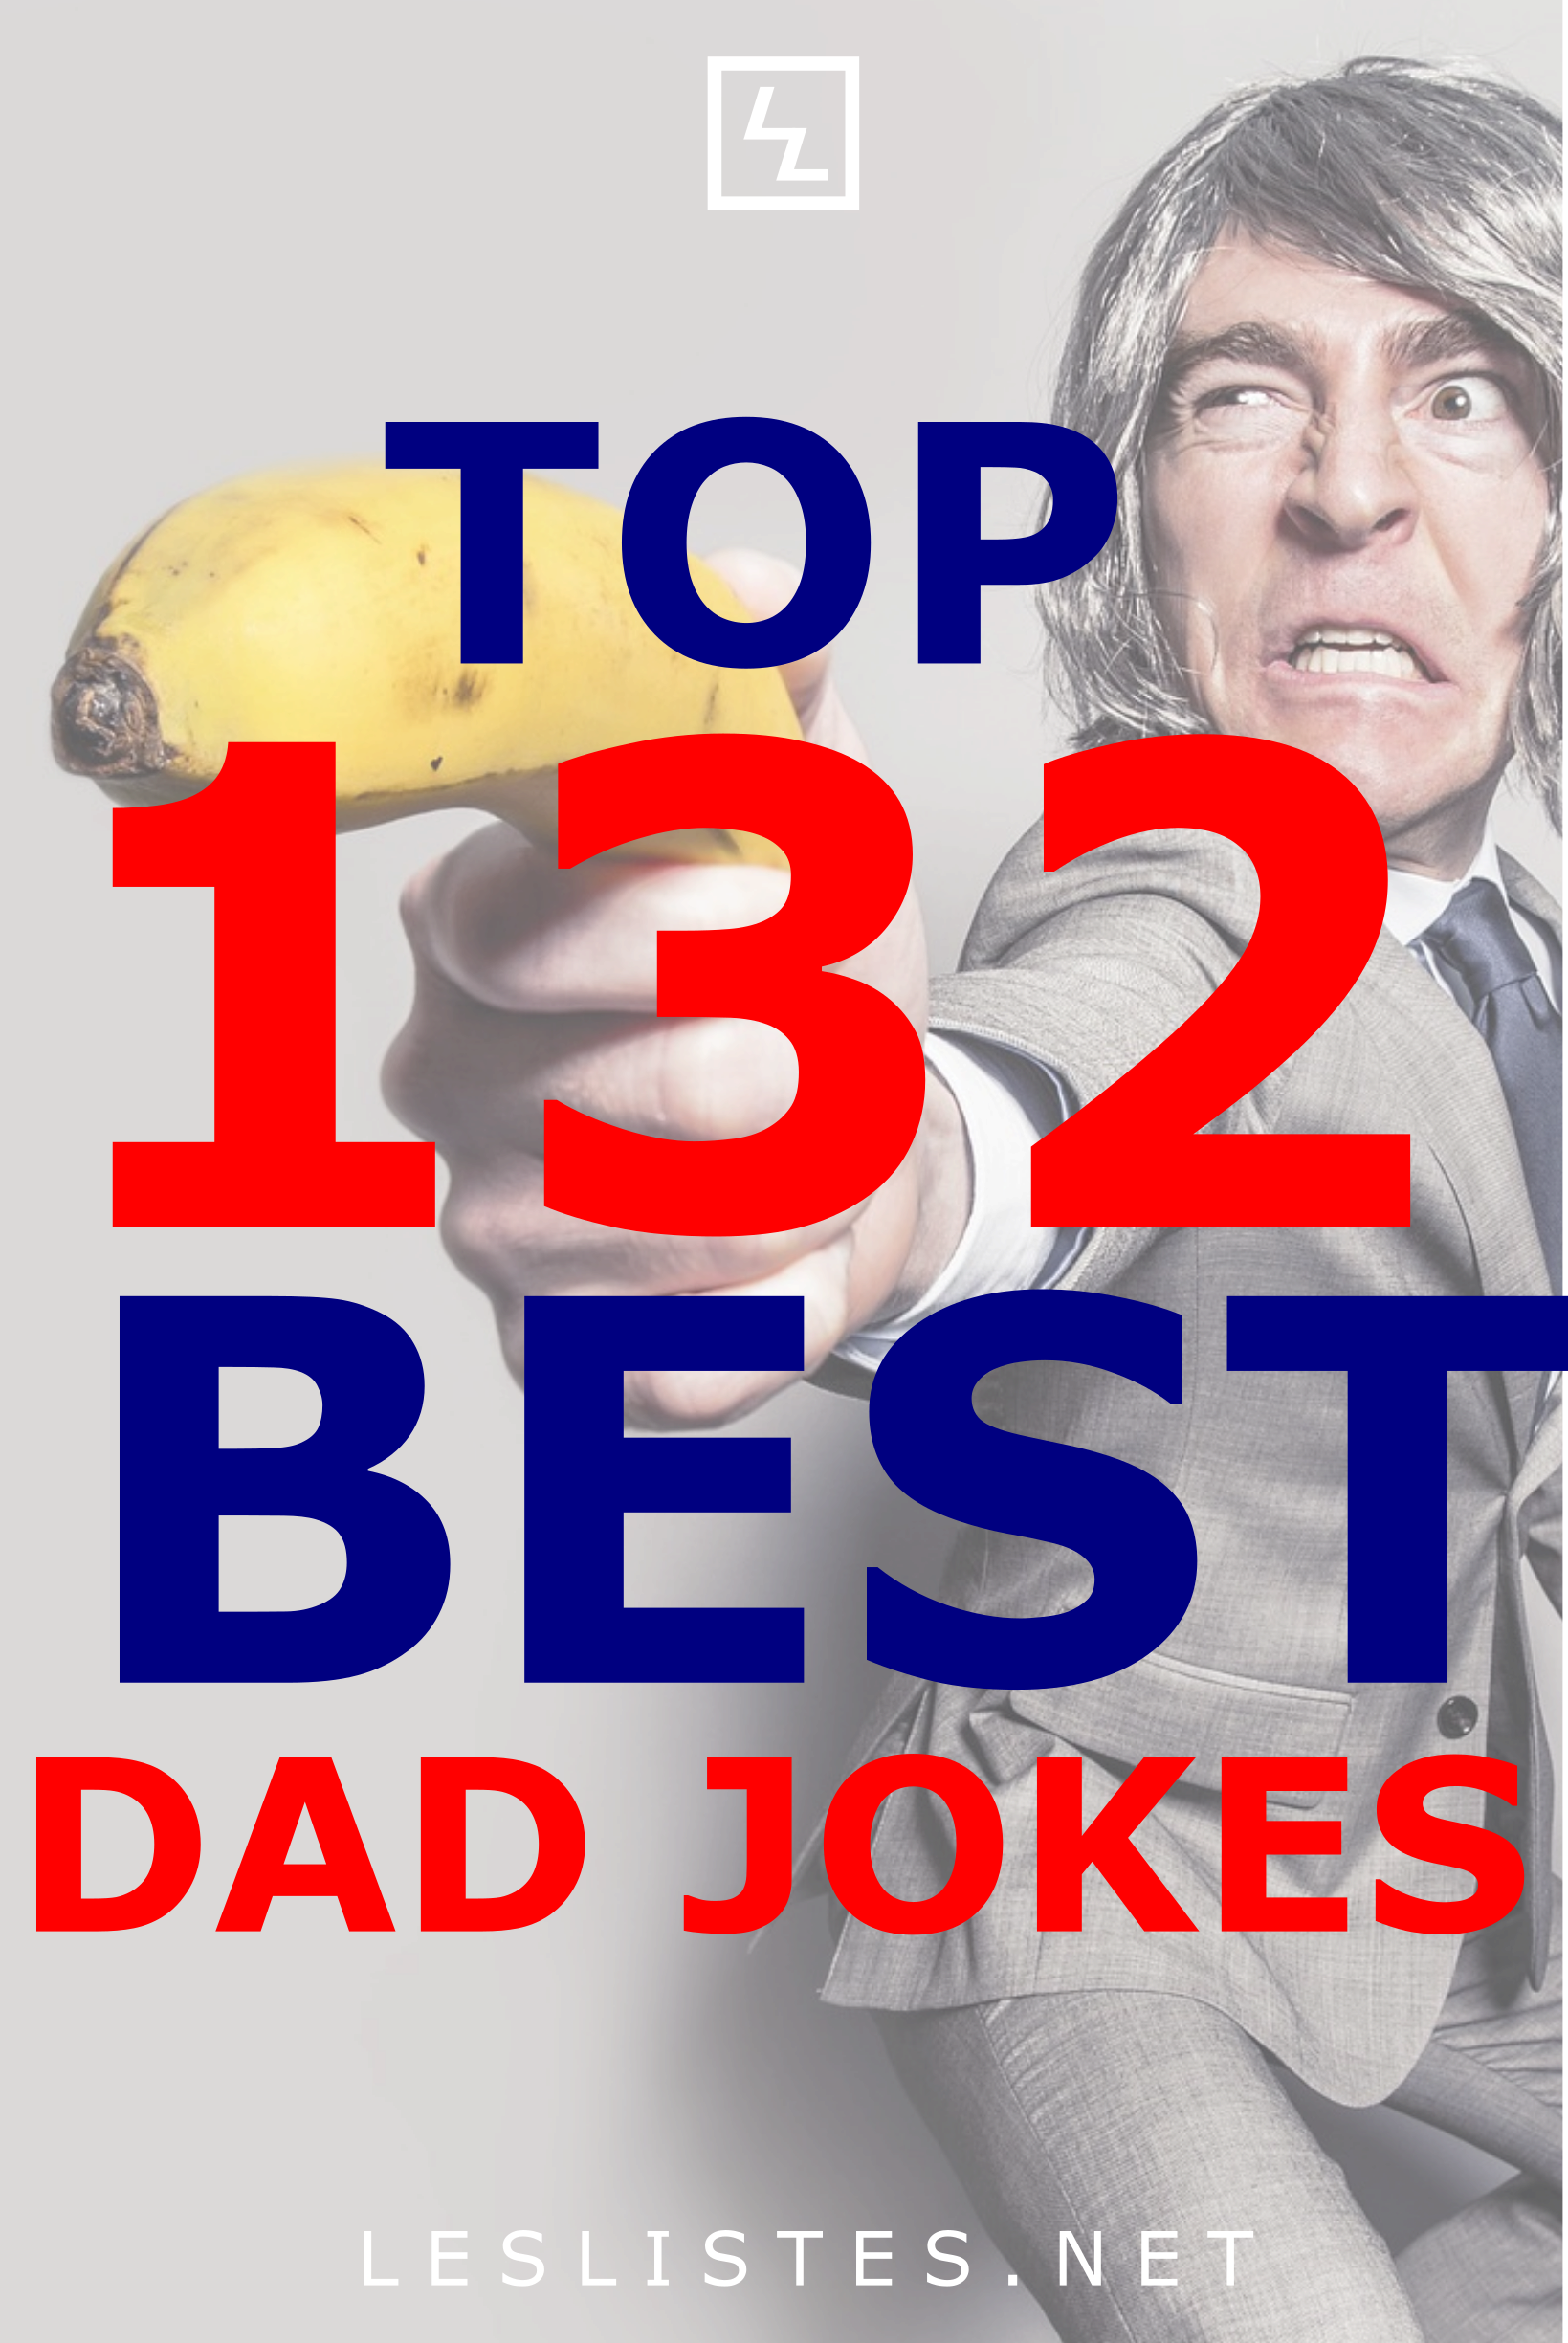 Dad Jokes Are Some Of The Worst Ones Out There Especially When Said By A Dad However Because The Dad Jokes Are In 2020 Best Dad Jokes Dad Jokes Funny